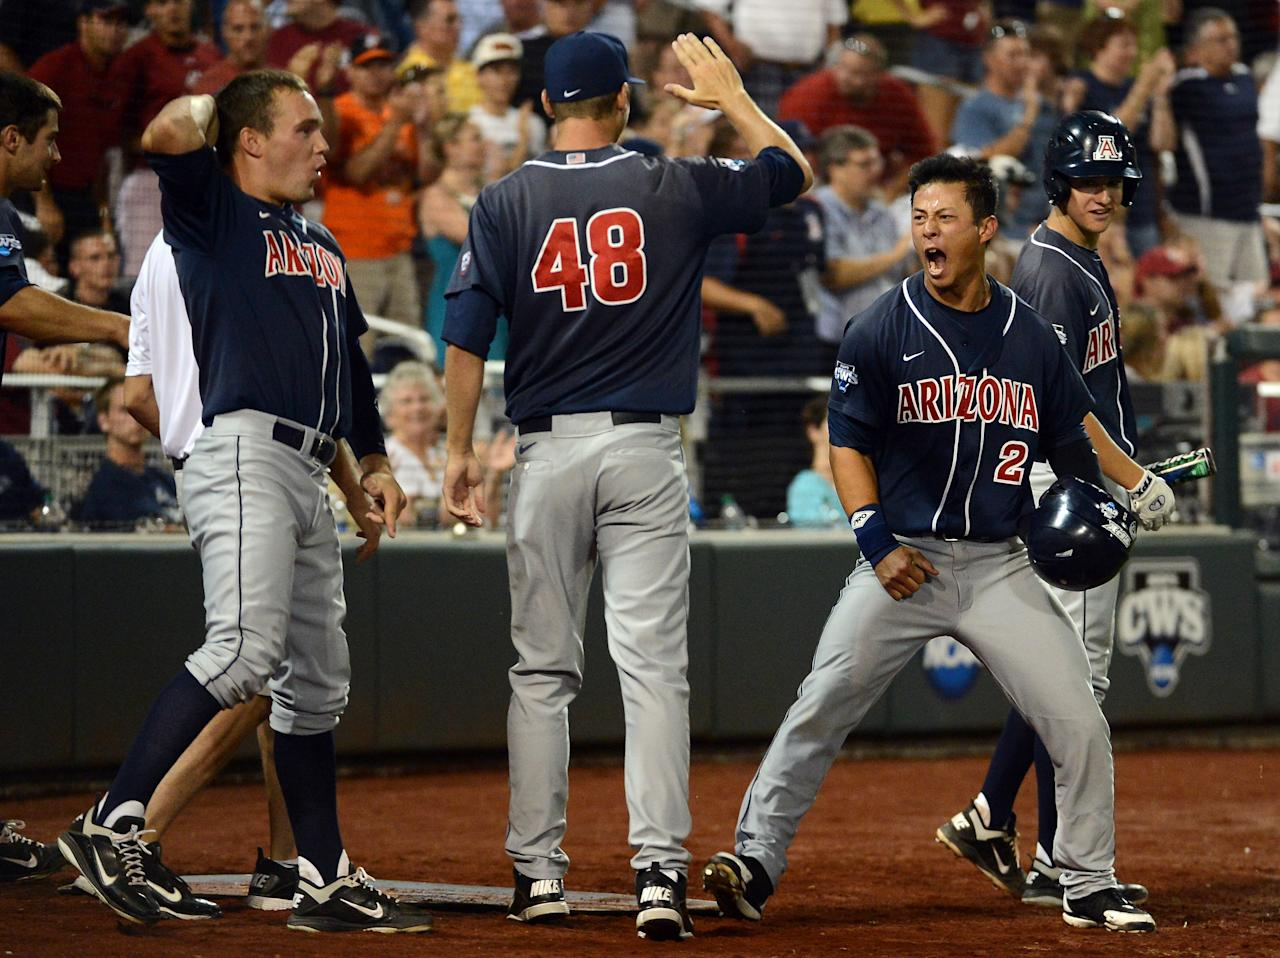 OMAHA, NE - JUNE 25:  Robert Refsnyder #2 of the Arizona Wildcats celebrates his run for a 2-1 lead over the South Carolina Gamecocks with Konner Wade #48 and Johnny Field #1 in the ninth inning during game 2 of the College World Series at TD Ameritrade Field on June 25, 2012 in Omaha, Nebraska.  (Photo by Harry How/Getty Images)